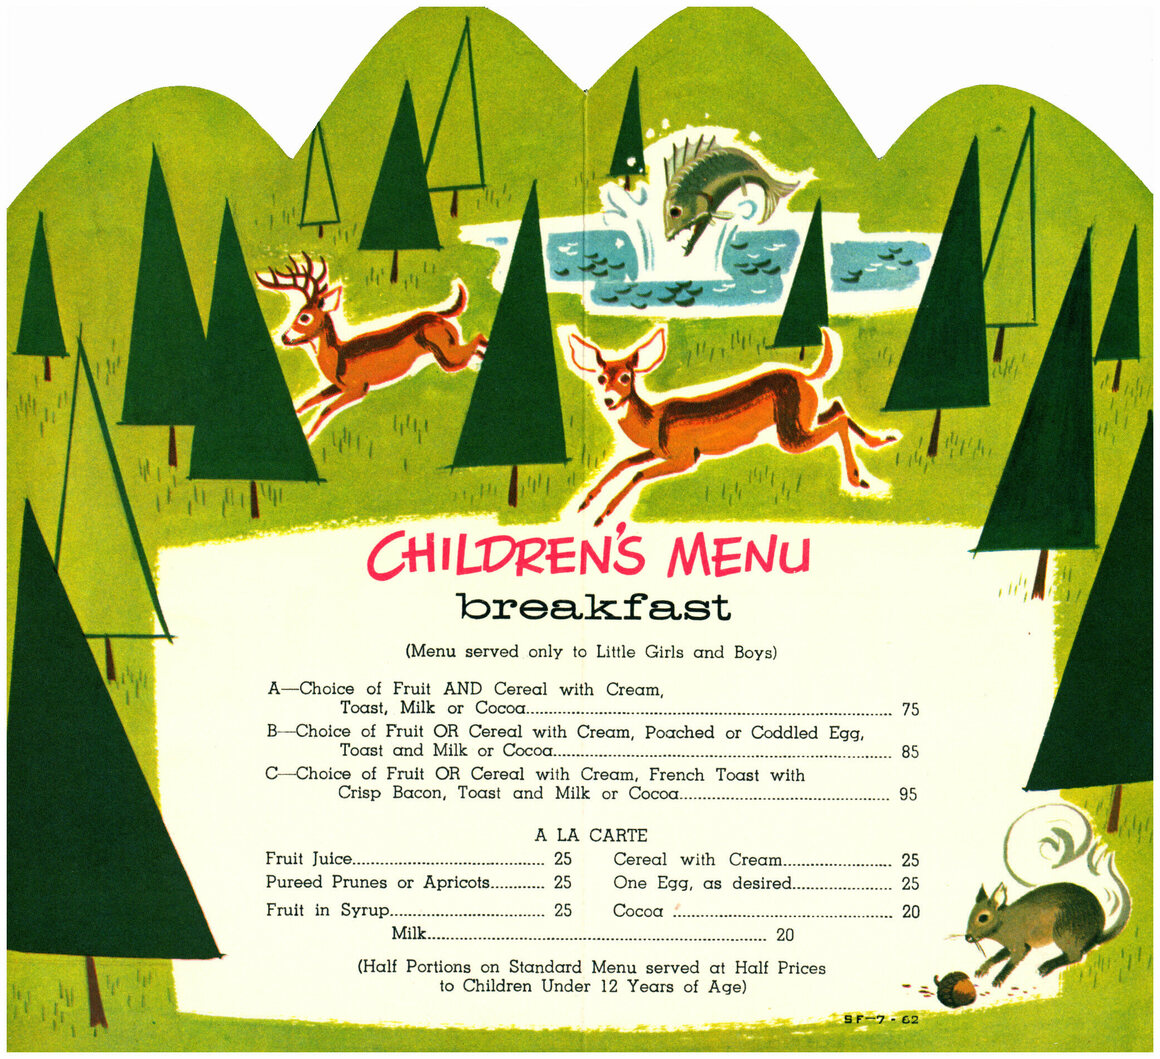 A charming children's menu from the Union Pacific Railroad Company.